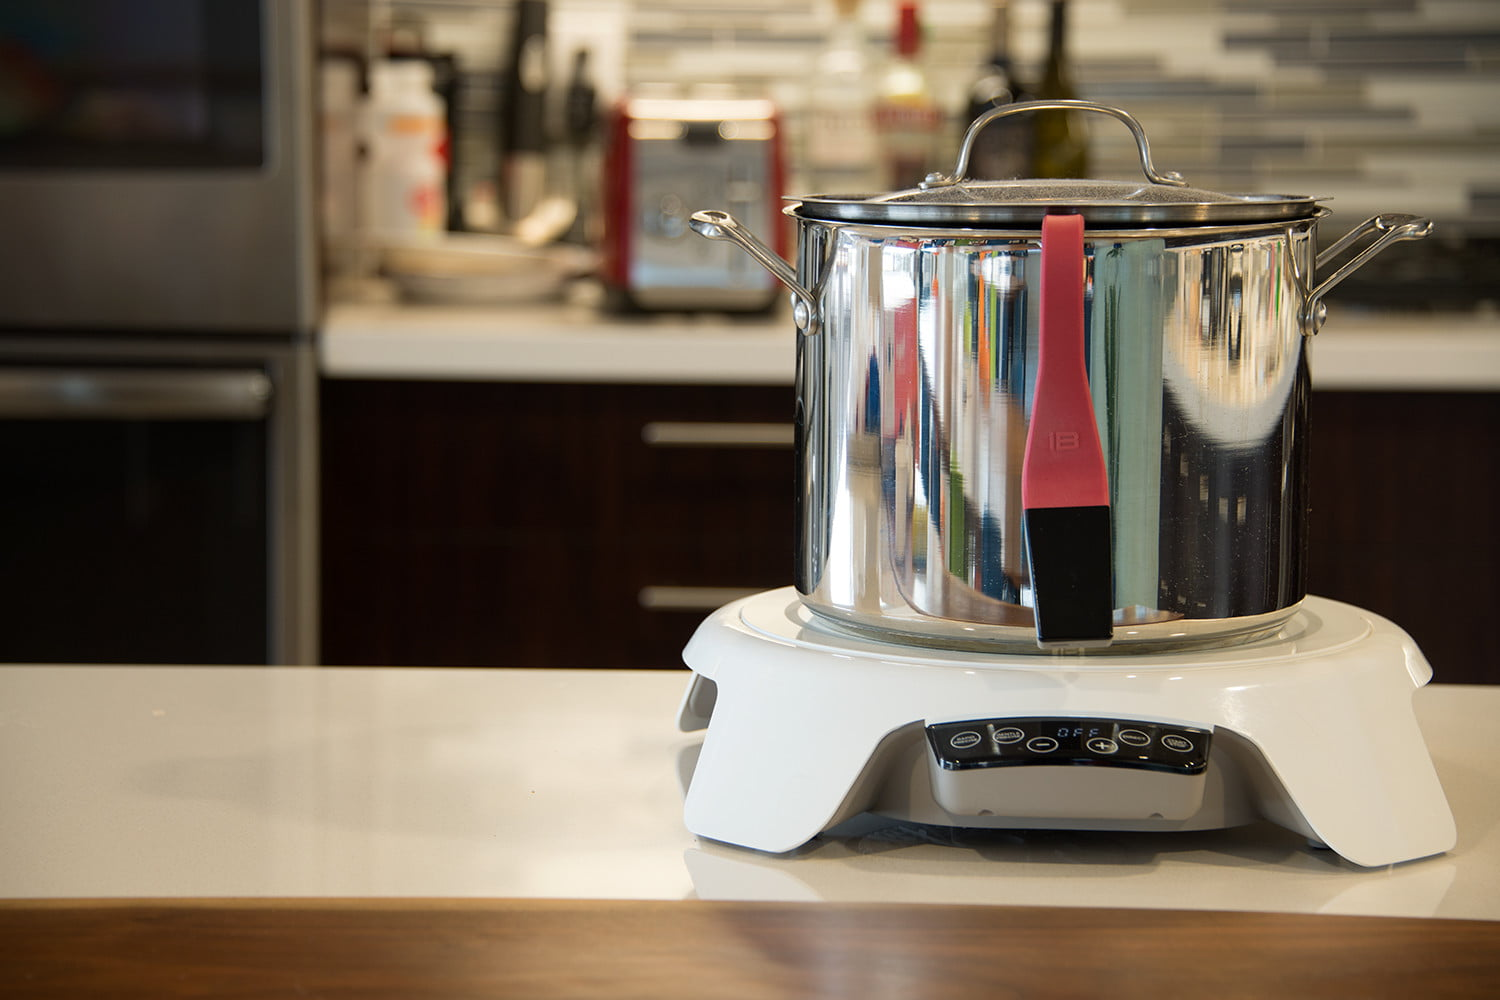 At CES and KBIS, connected smart appliances begin to deliver a smarter kitchen